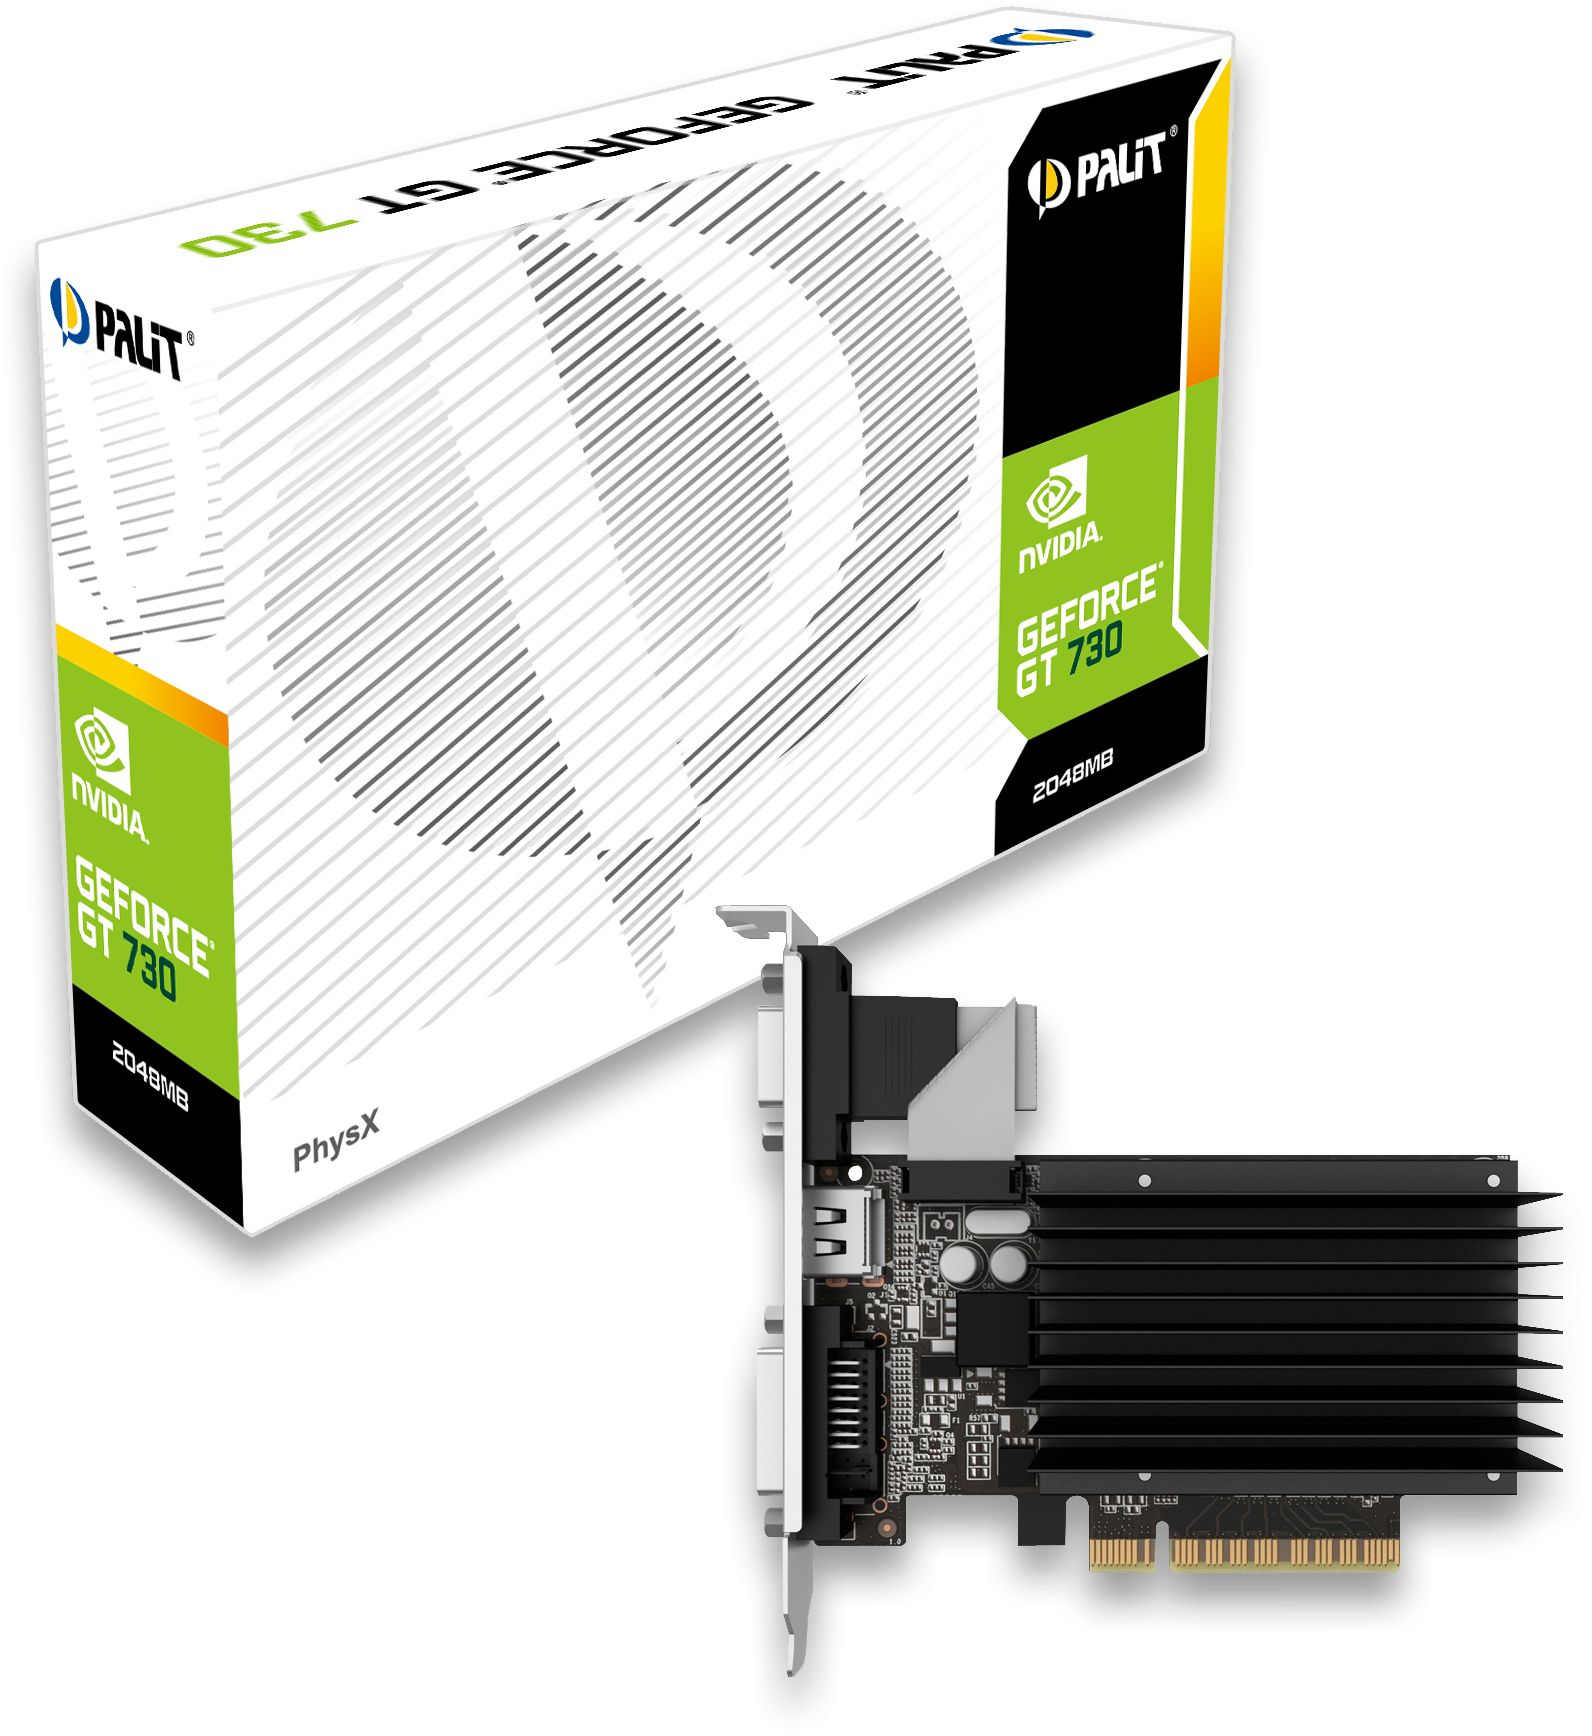 Geforce Gt730 2gb Ddr3 Fanless Graphics Card Neat7300hd46 2080h Msi Gt 630 1gb Palit Replaces The Gt630